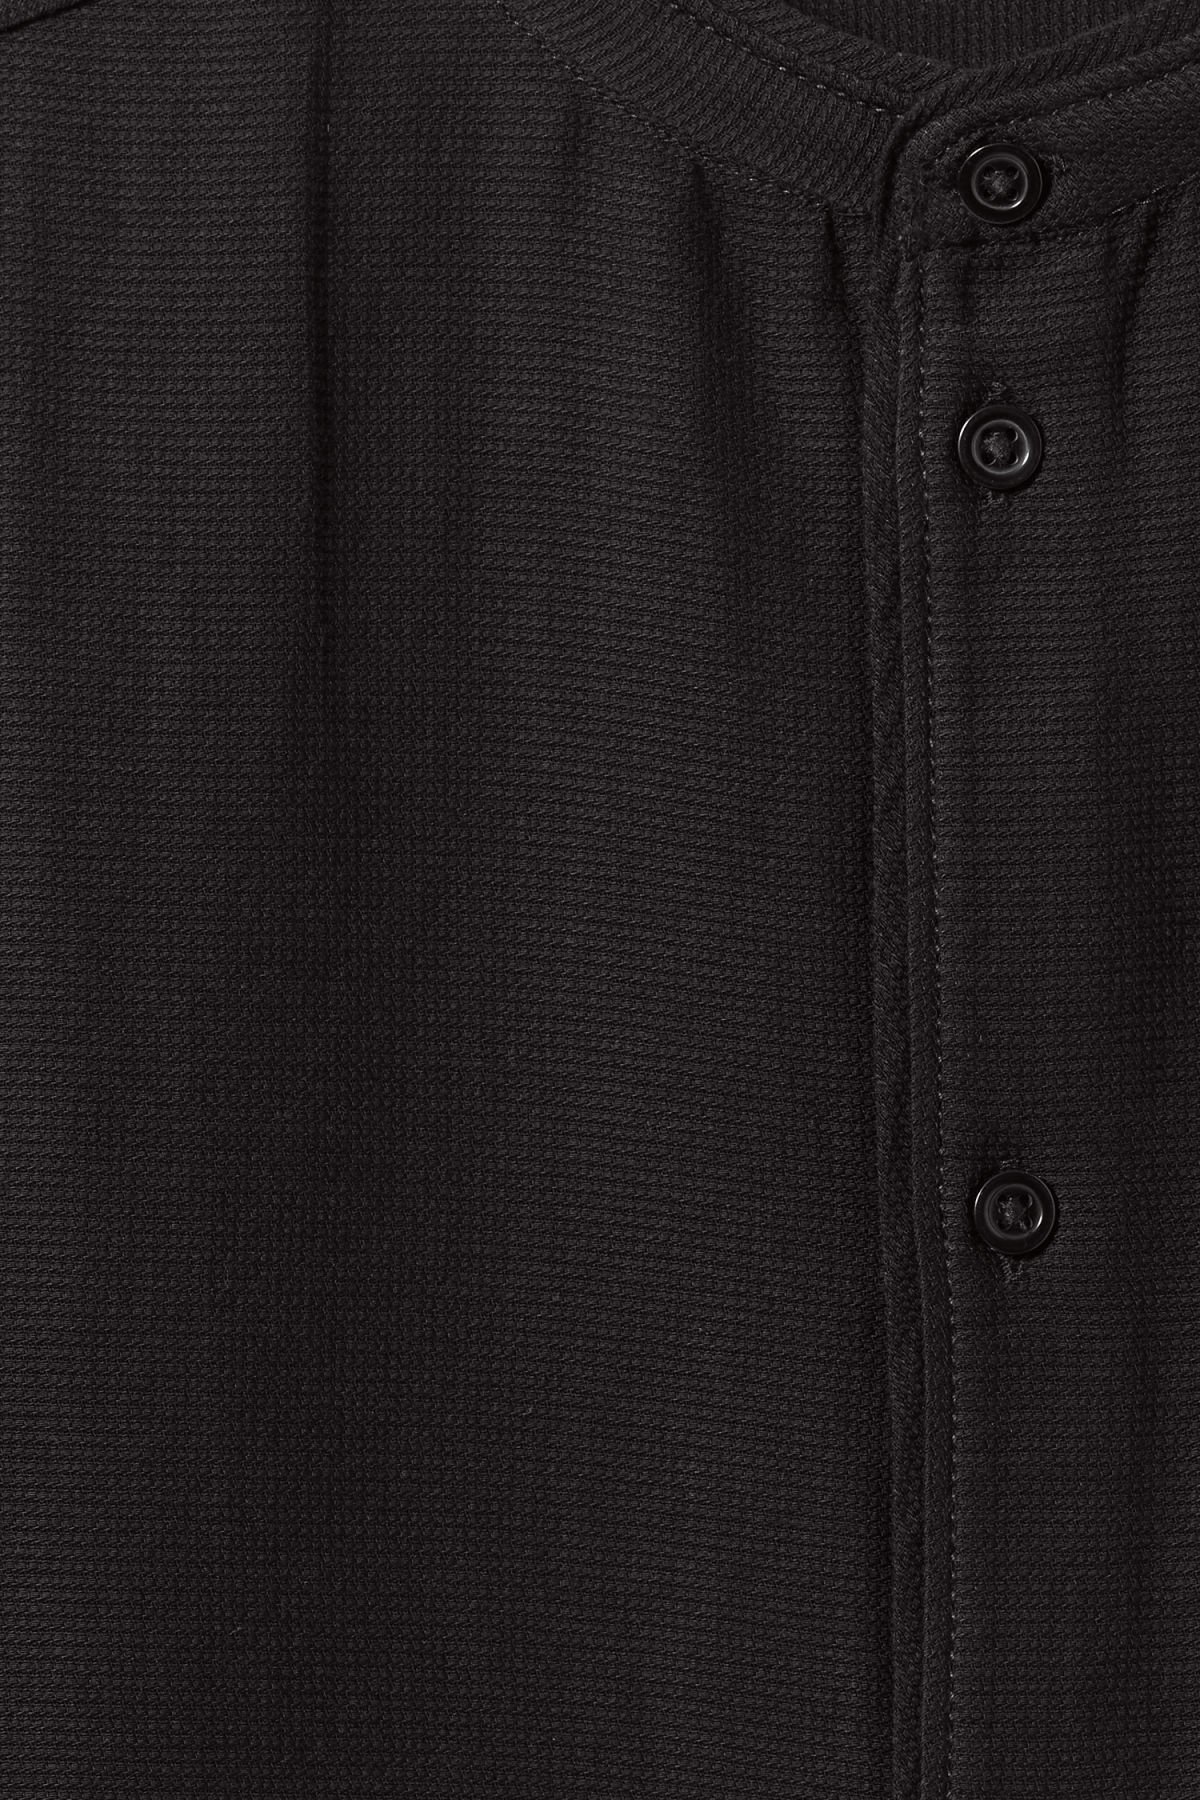 Detailed image of Weekday hunt shirt in black